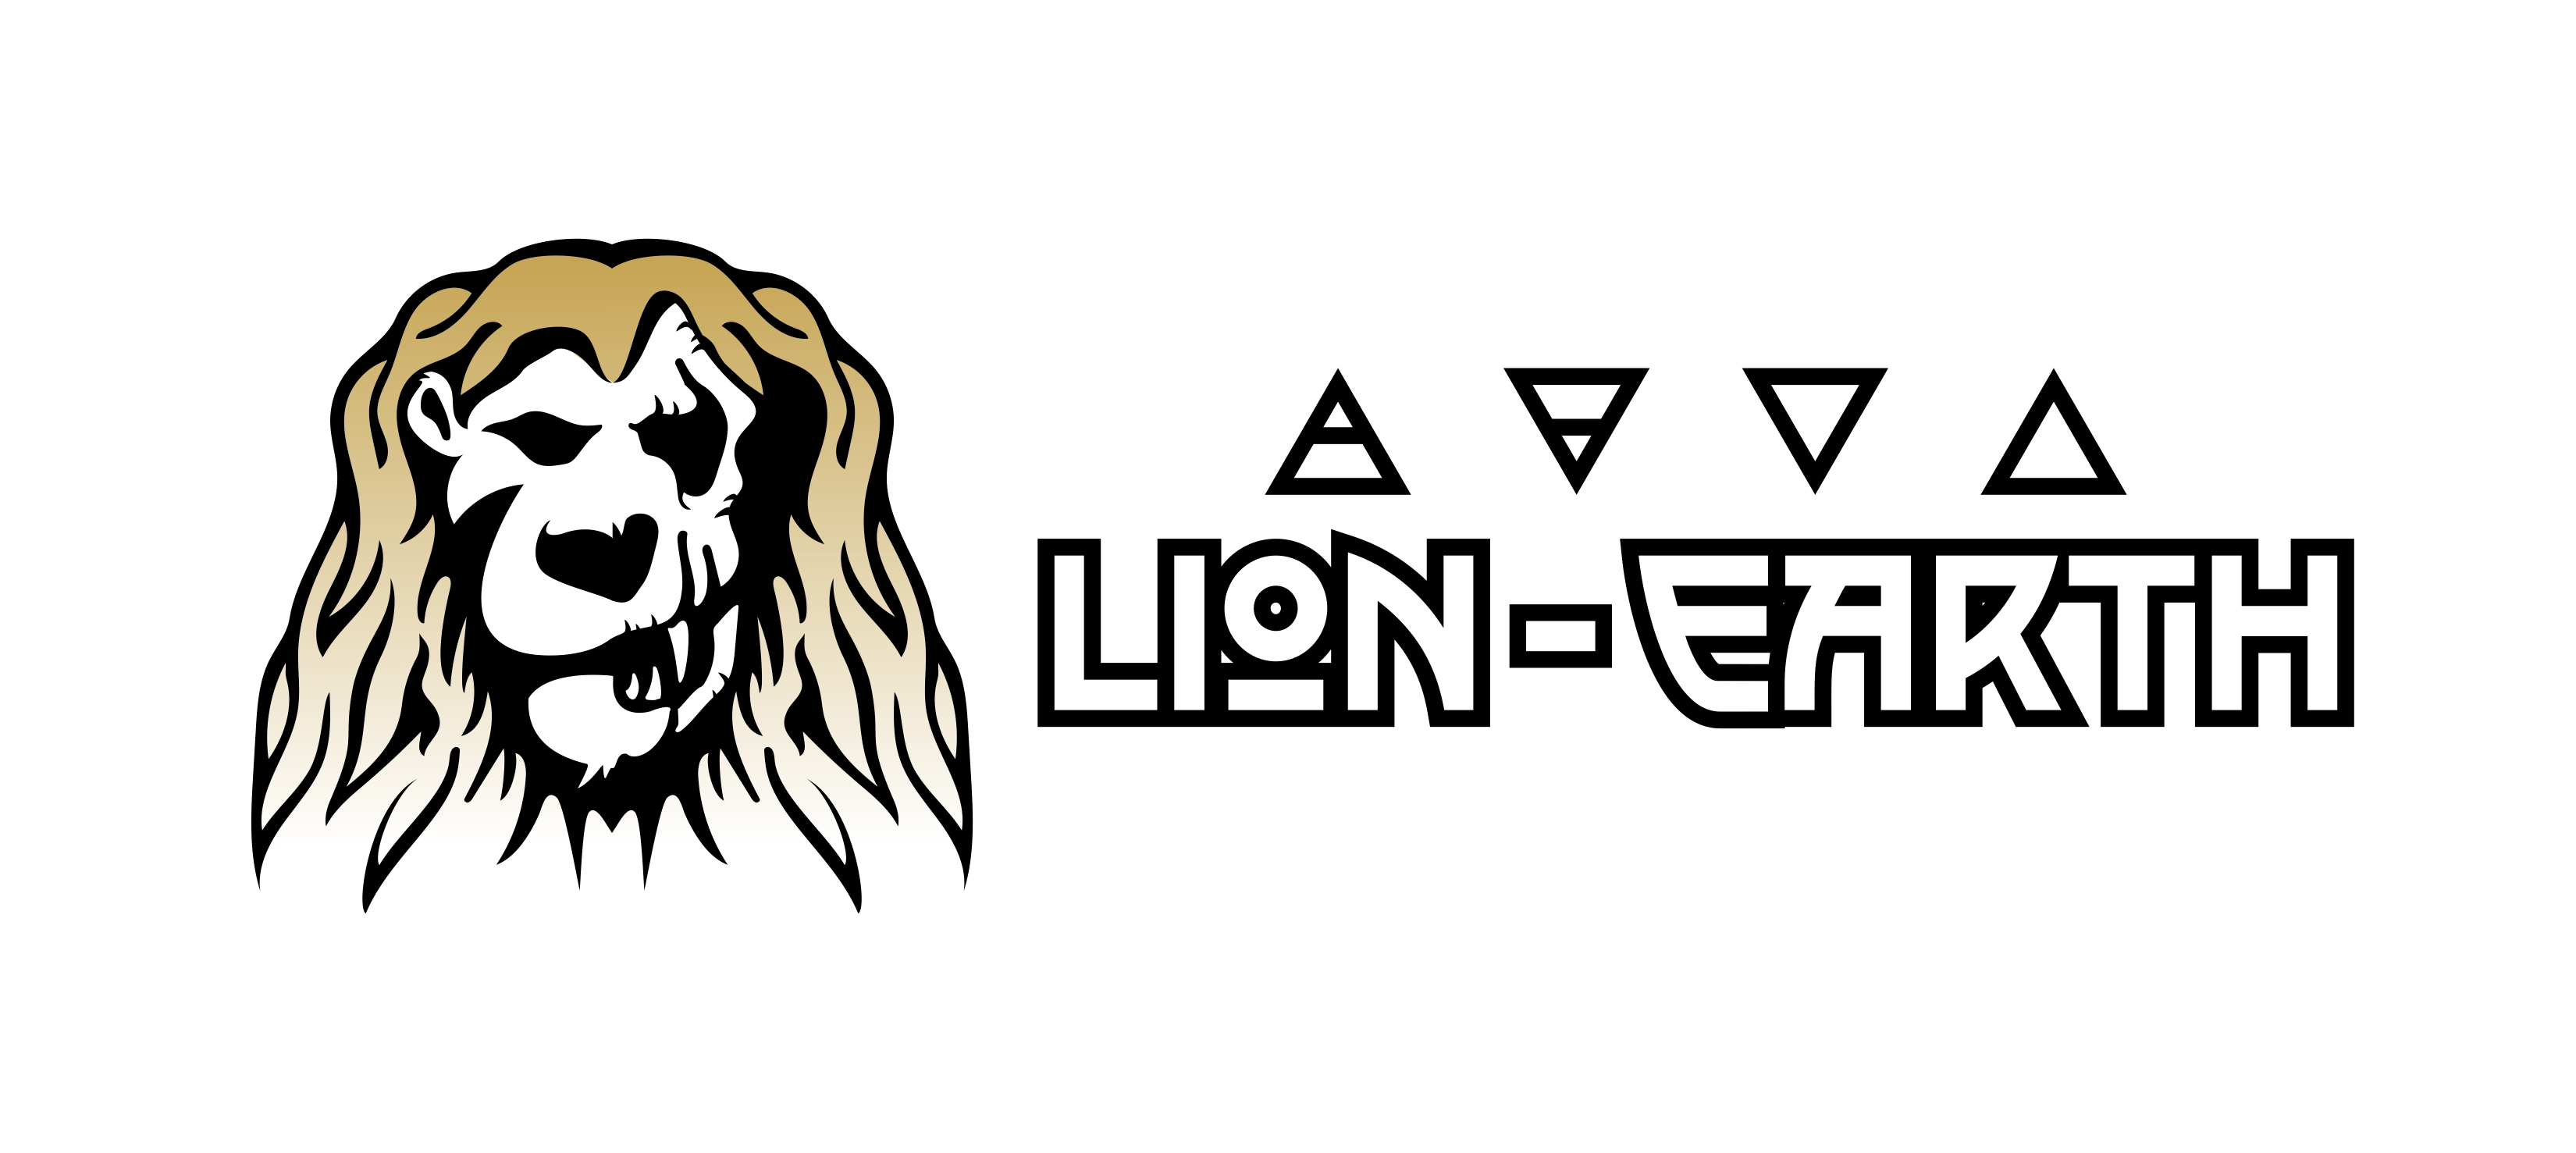 Lion-earth has Entered the Alternative Rock Music World with a Debut Album that is a Force to be Reckoned With